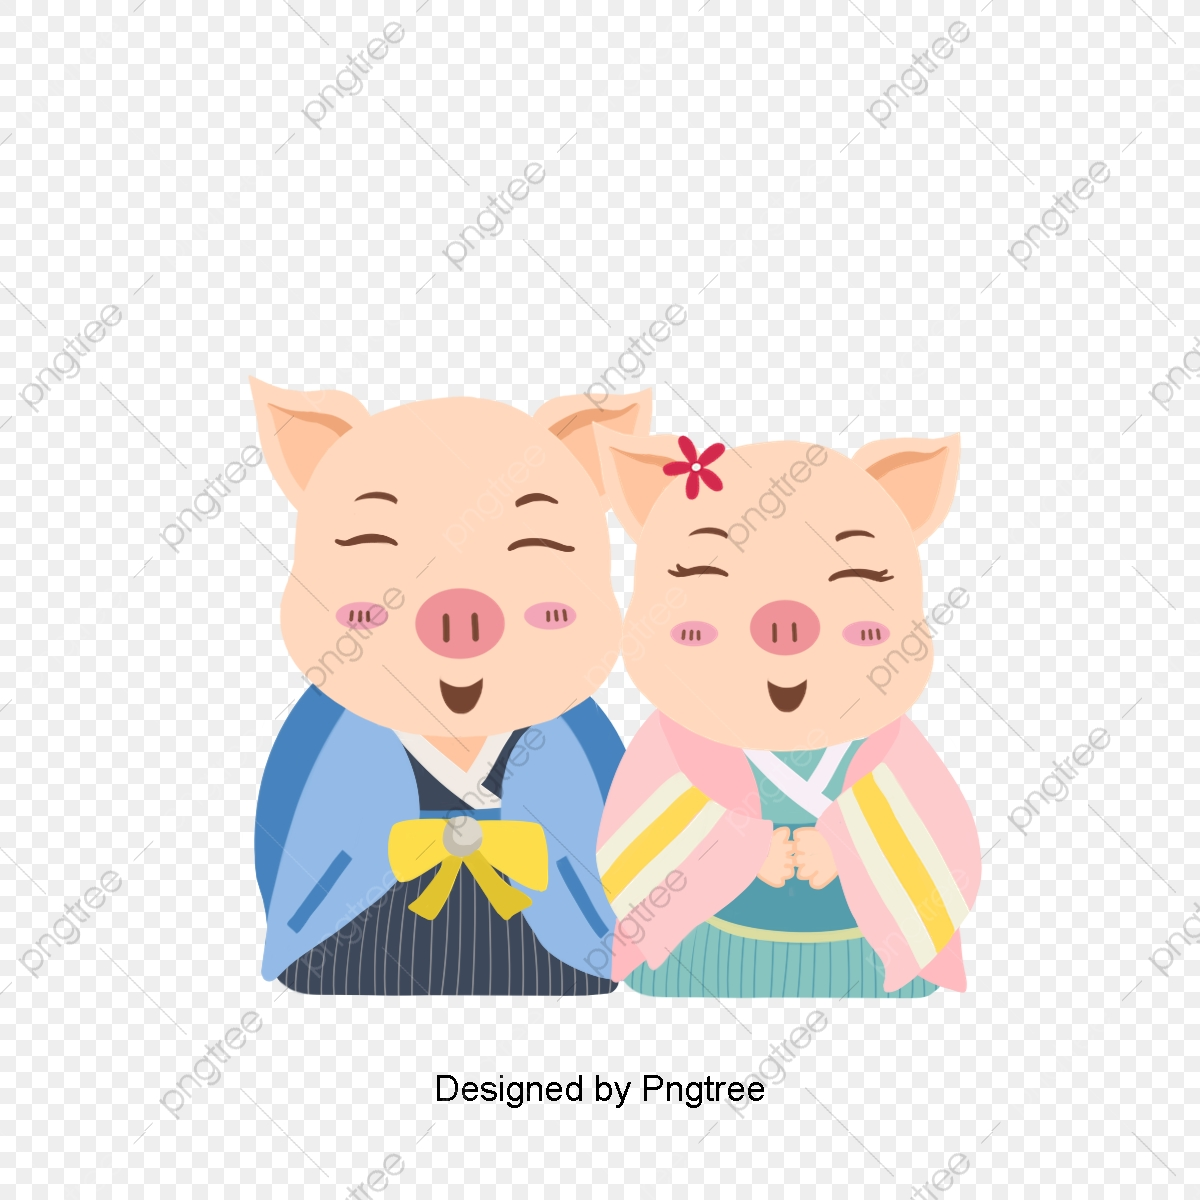 Cute of pigs design. Pig clipart couple